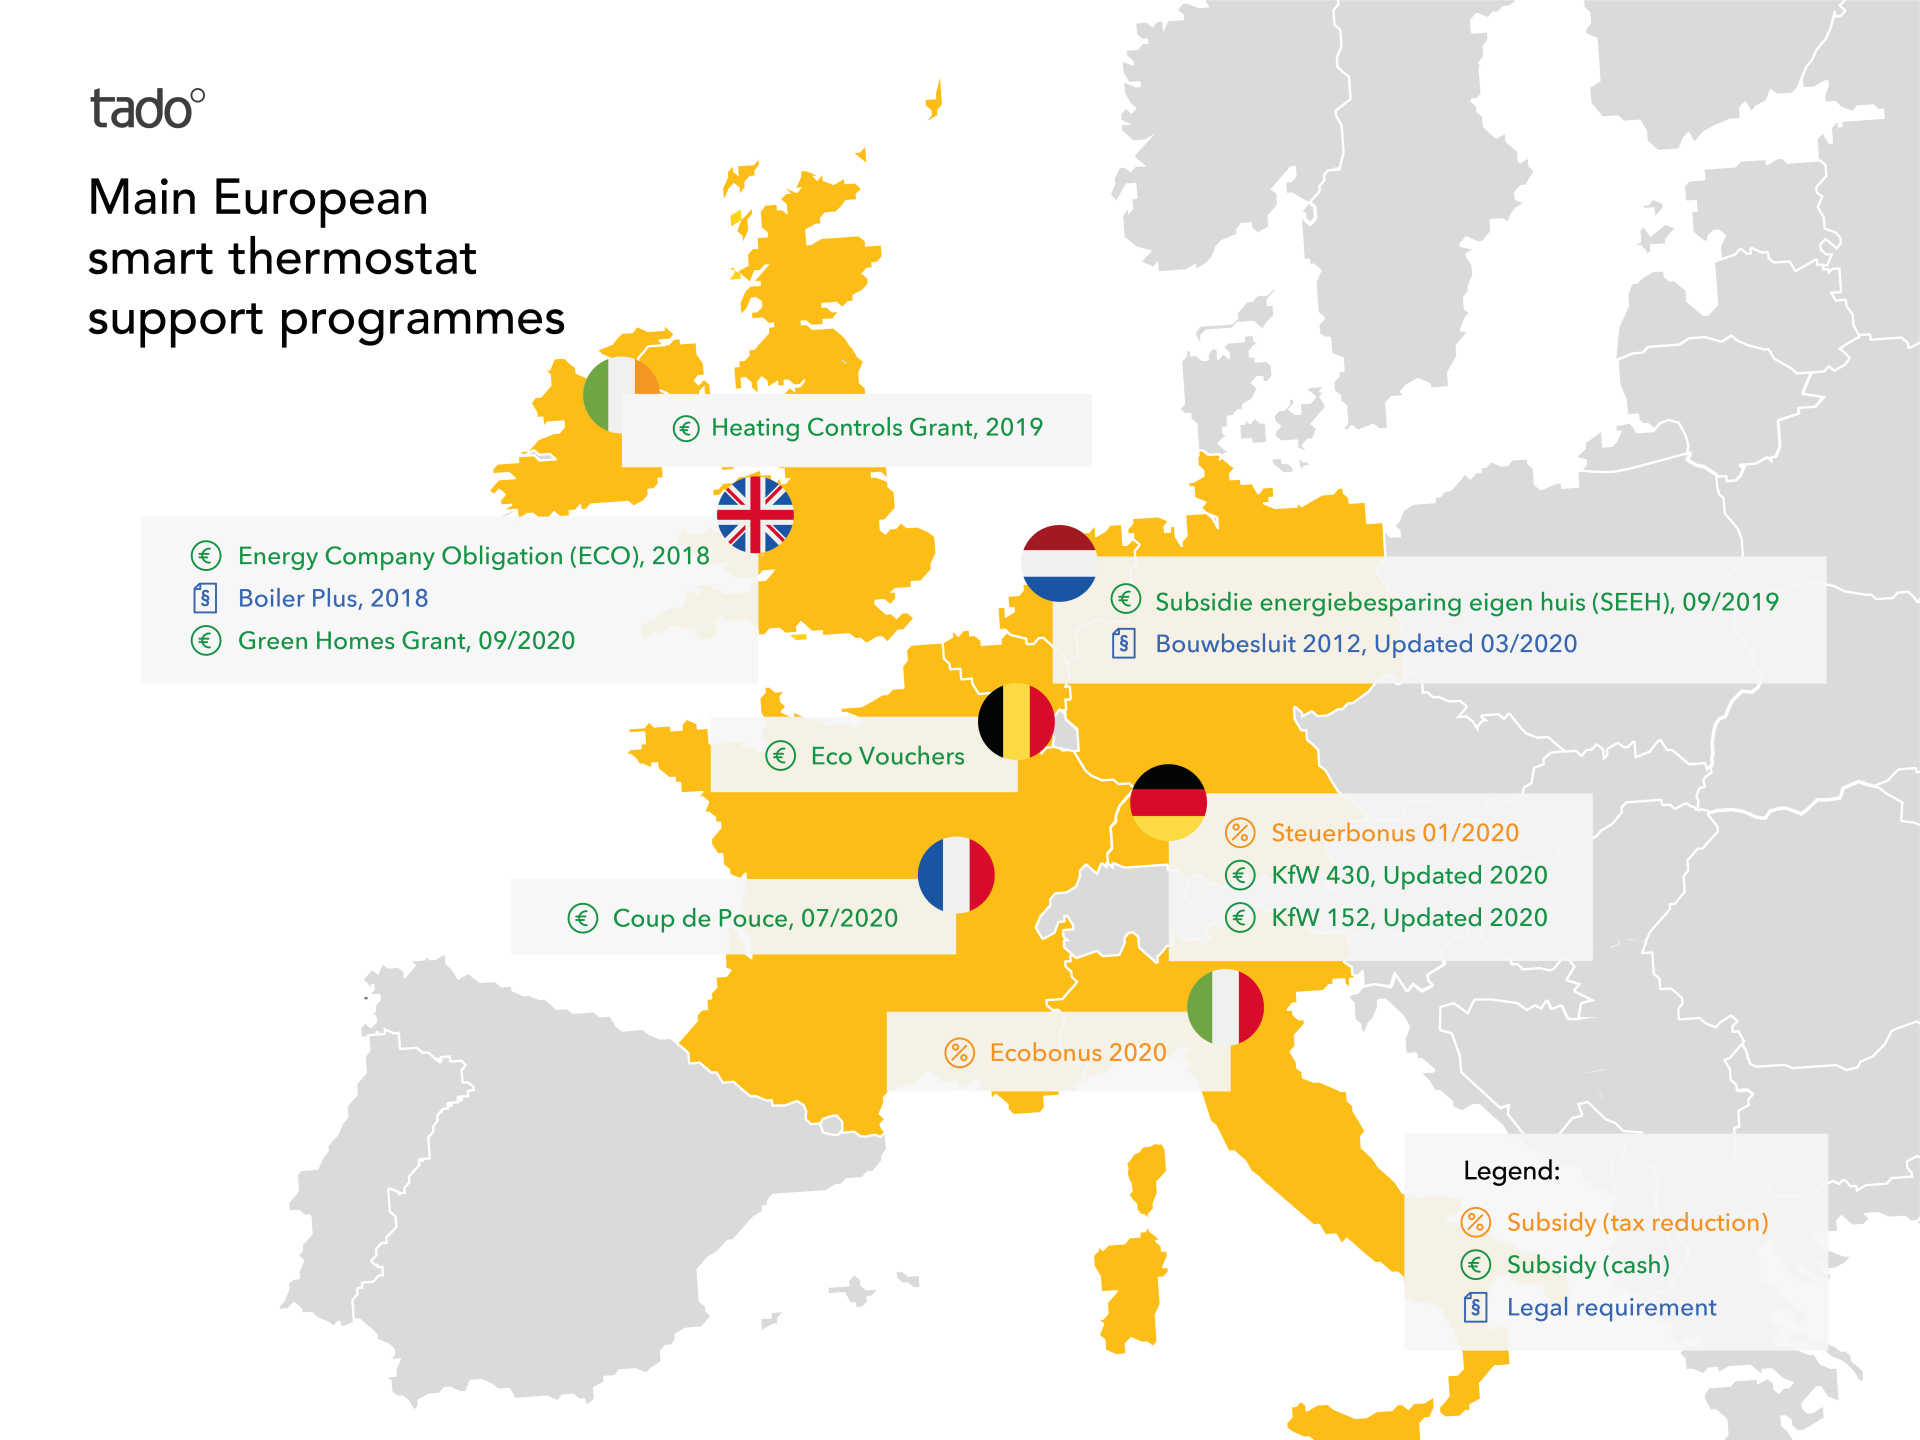 Press Release - Major governments across Europe supporting smart thermostats with effective subsidy programmes